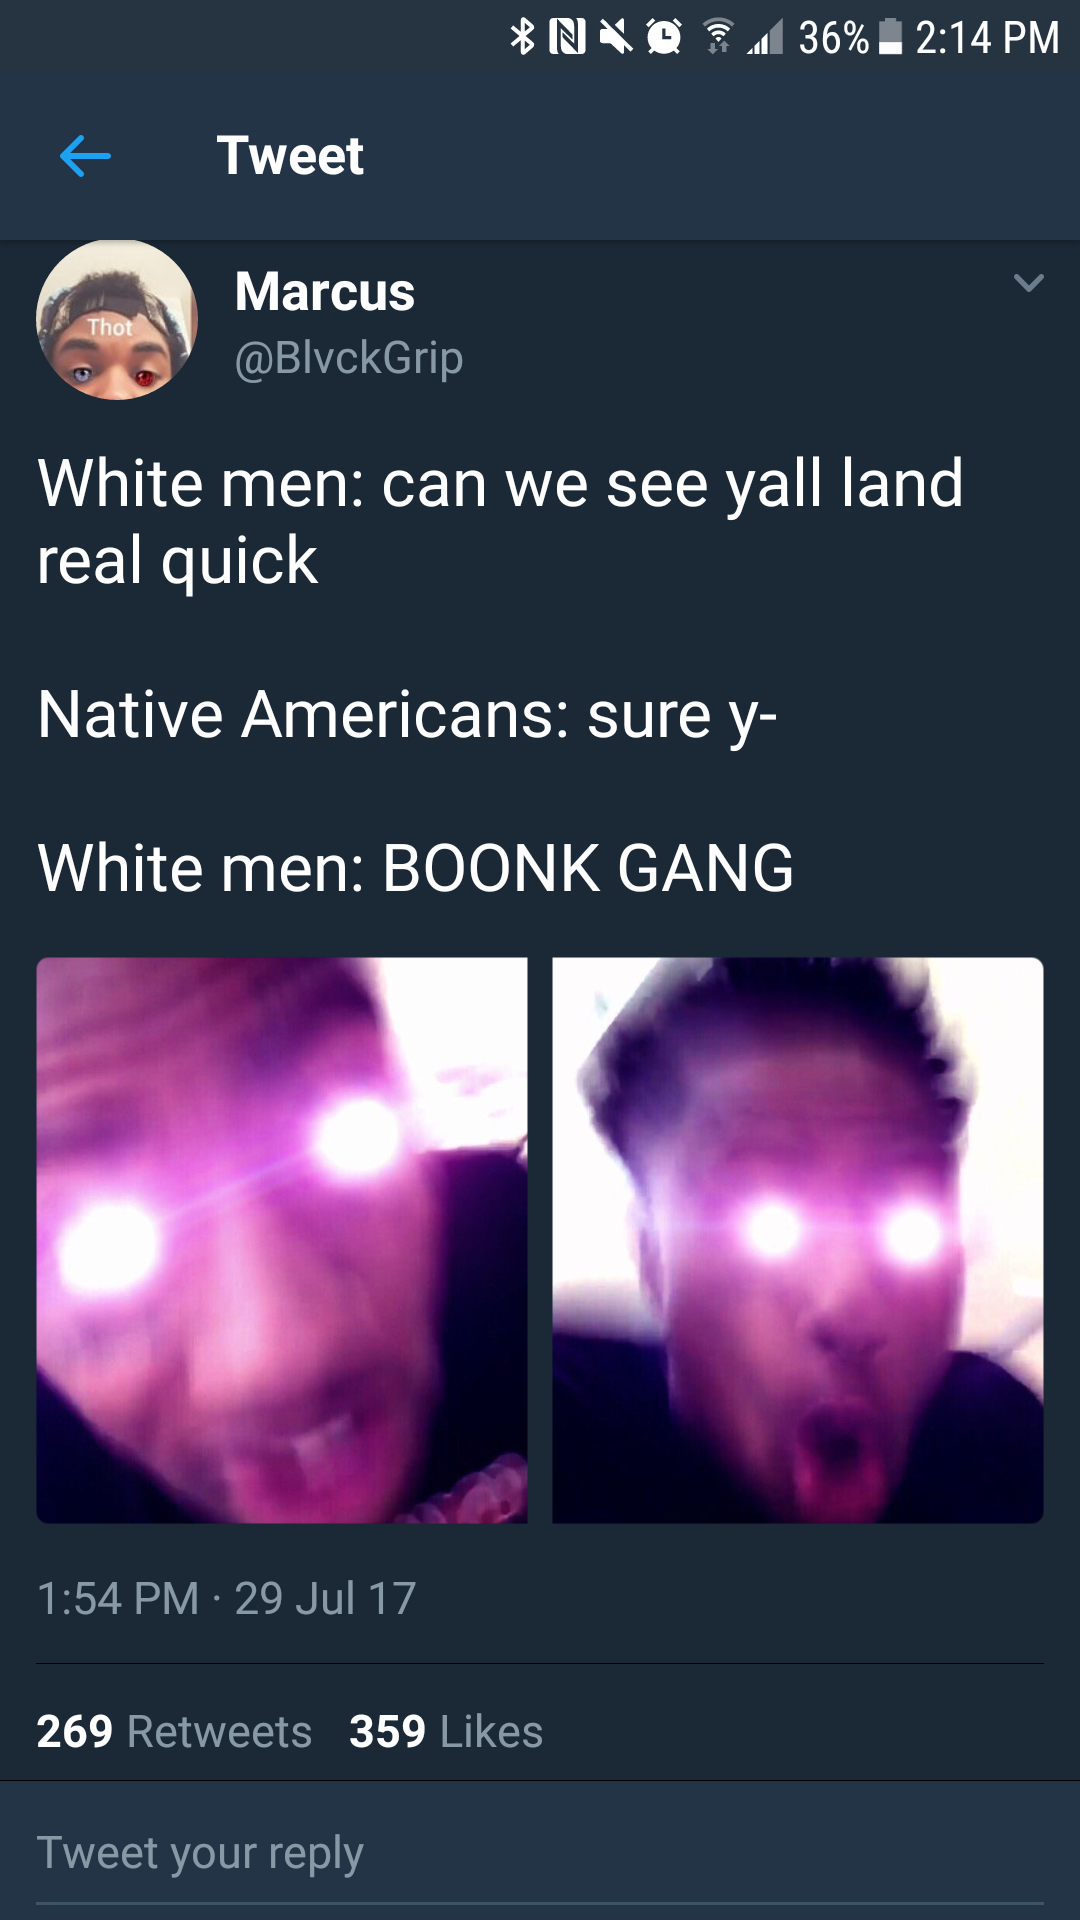 eed white men can we see yall land real quick native americans sure